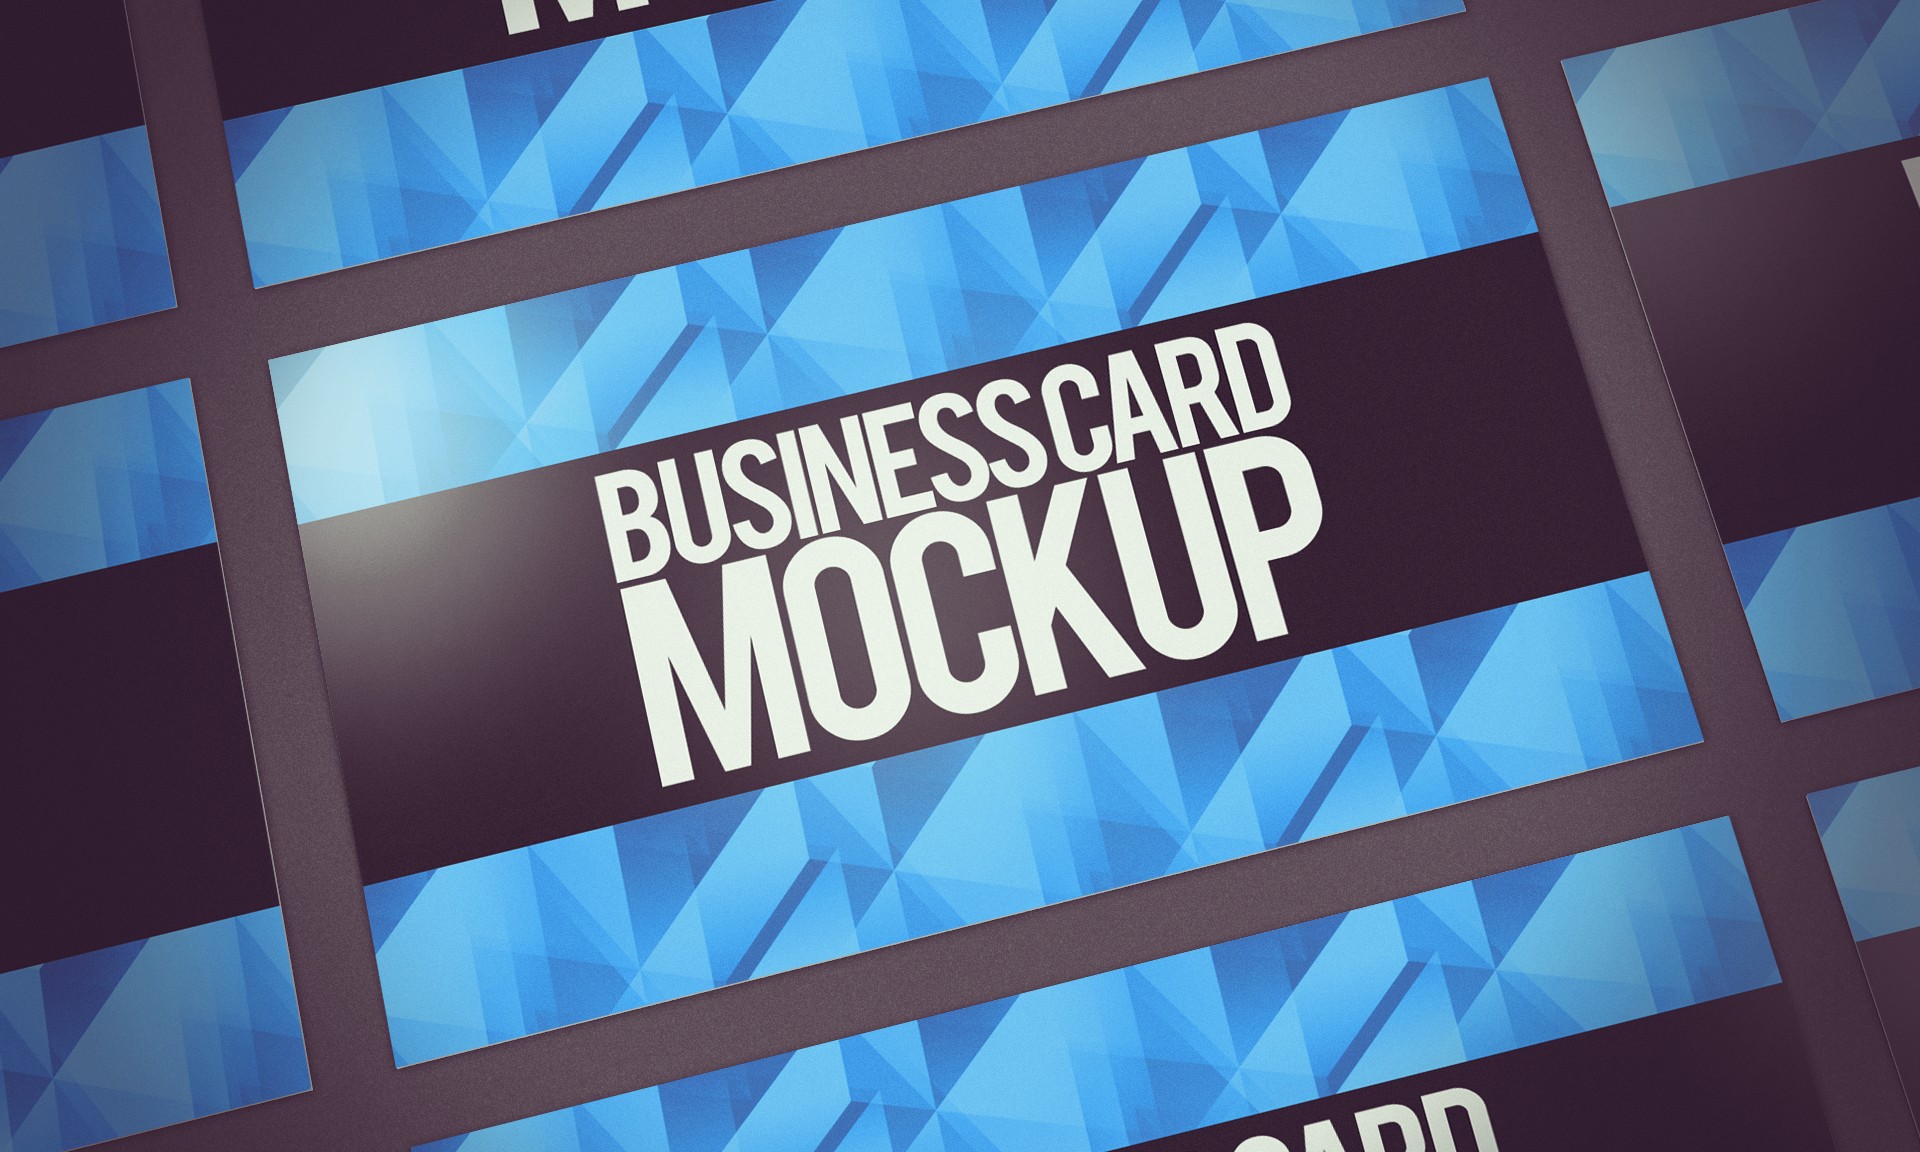 Business card mockup PSD by dimkoops